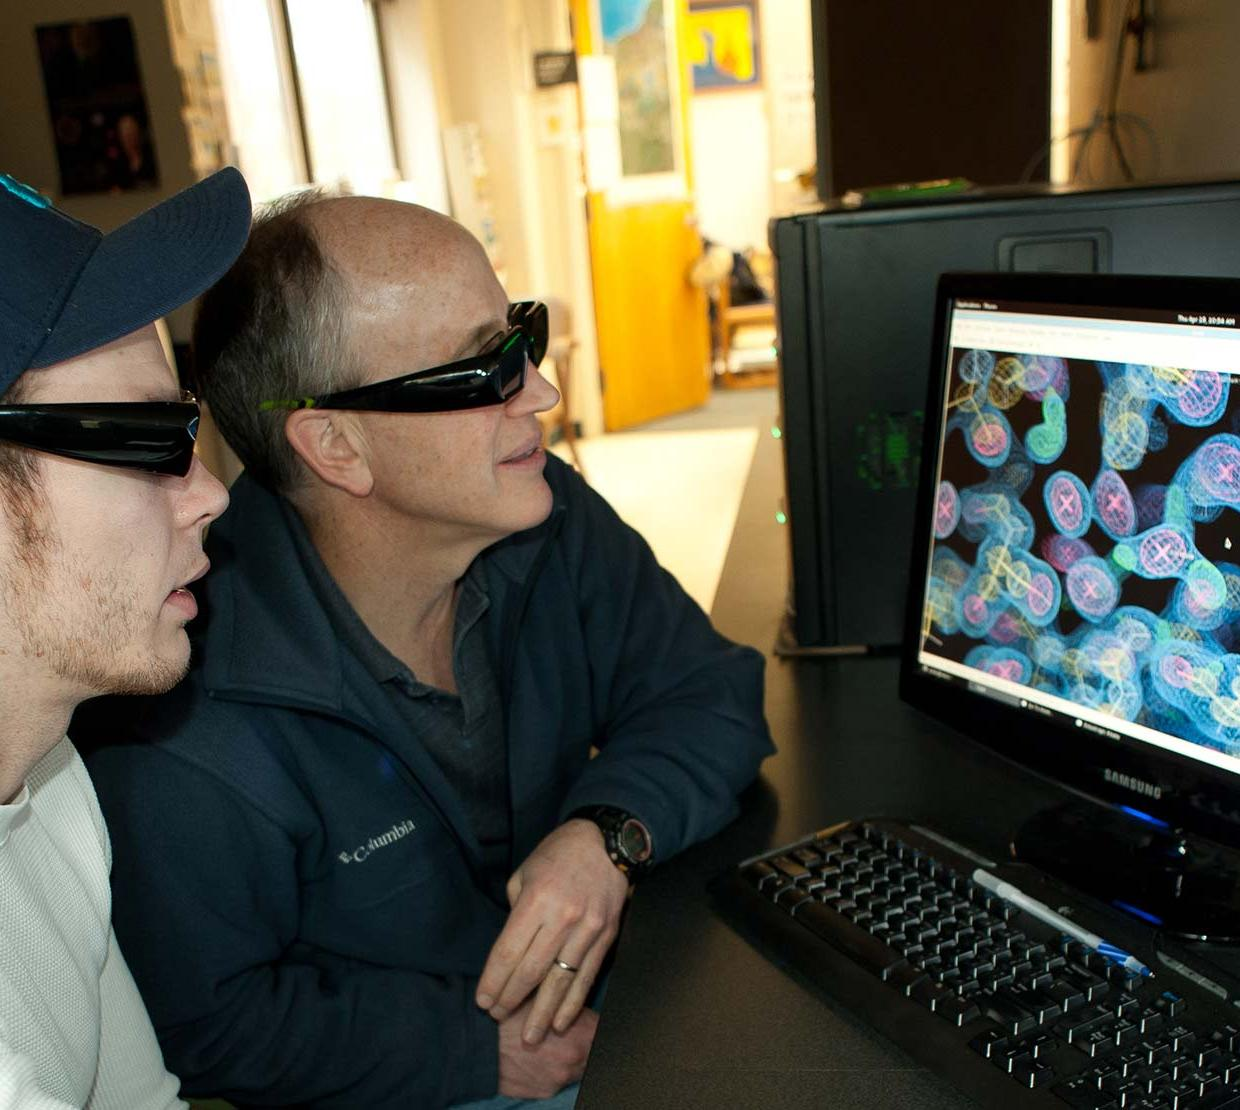 Andy Karplus and student analzying X-ray crystallography experiments